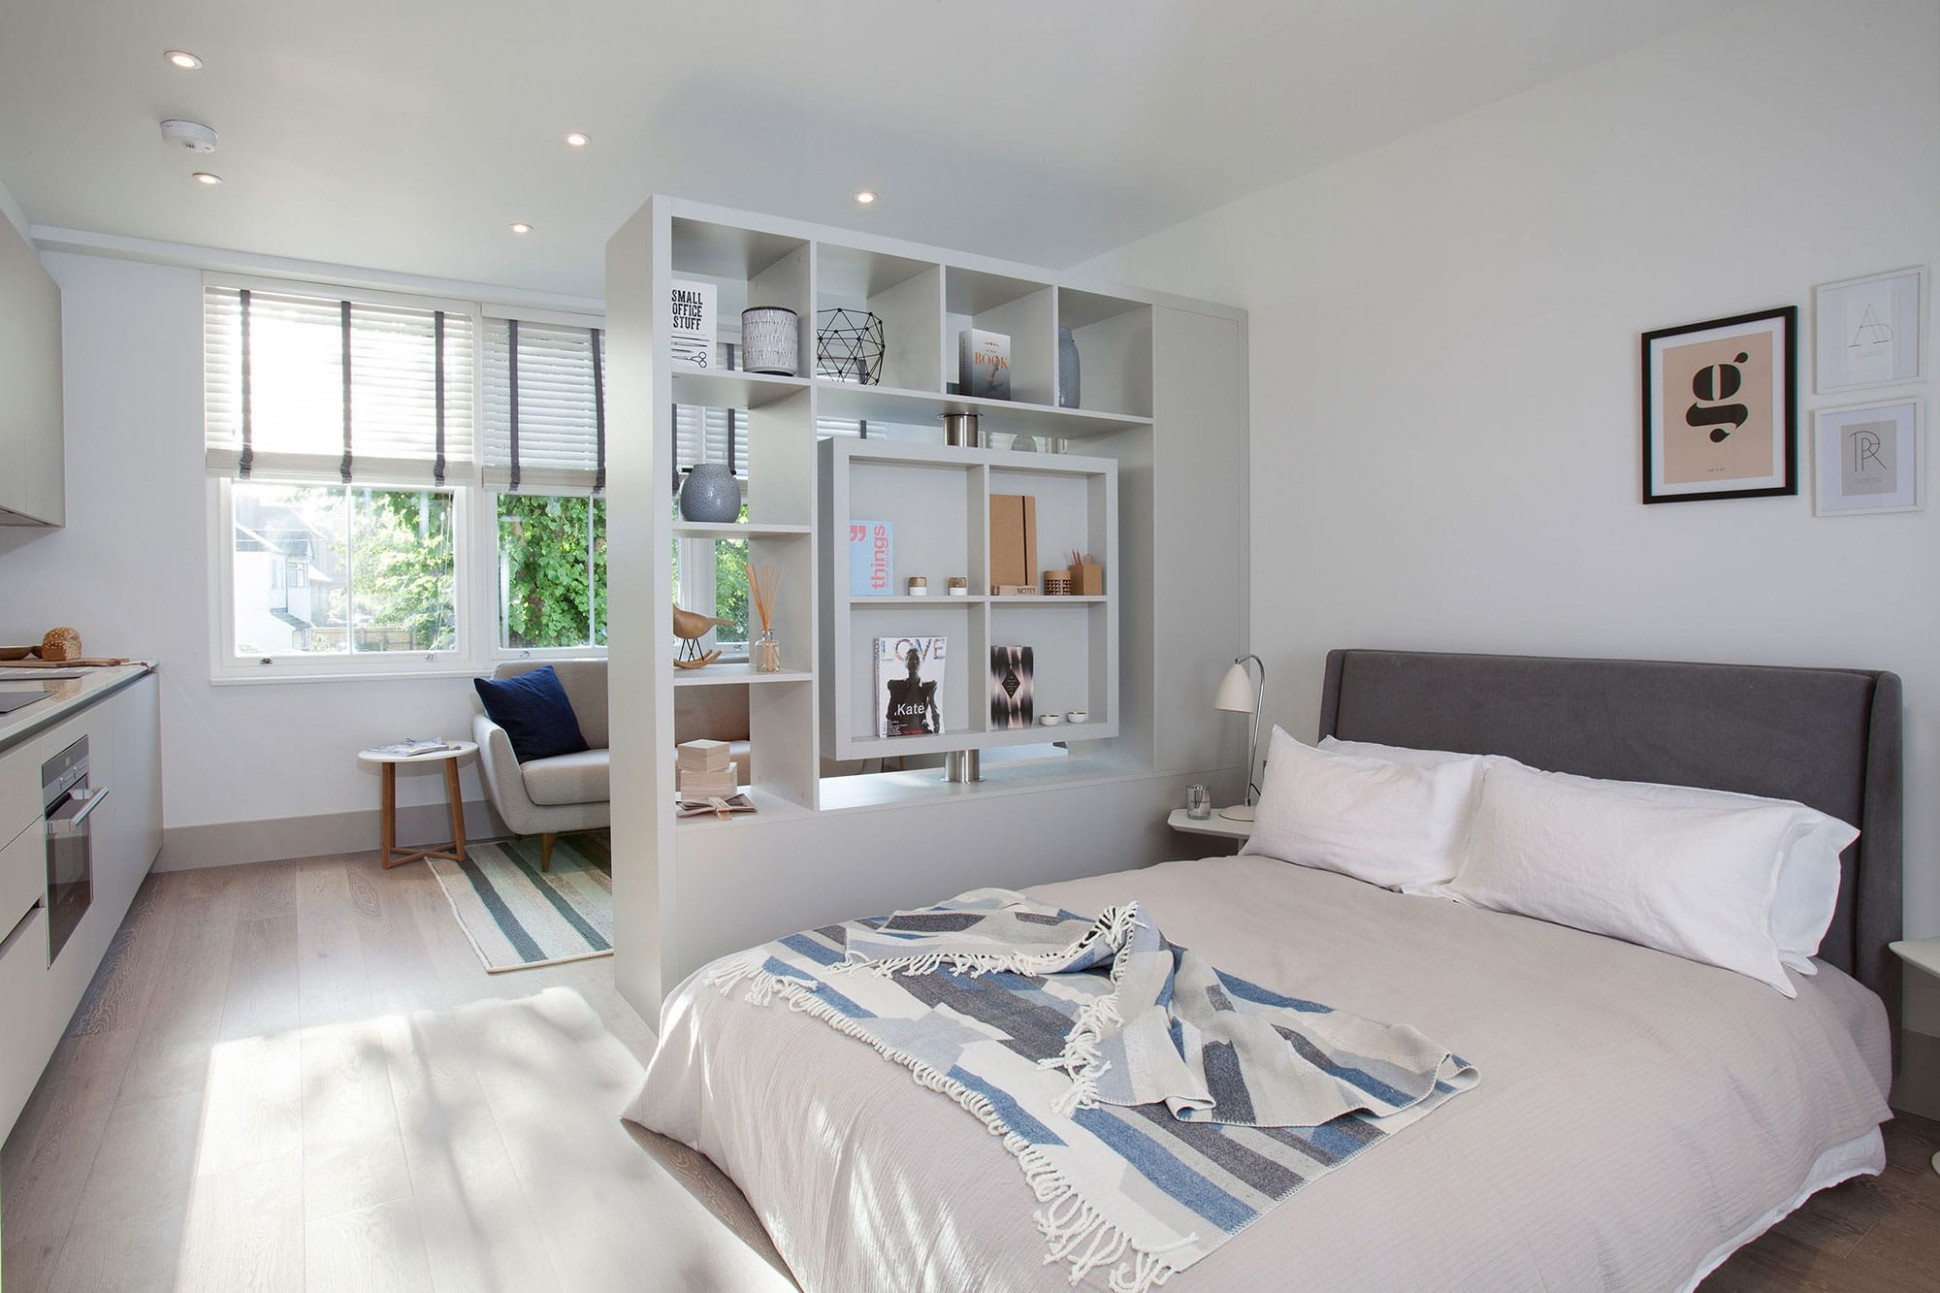 Small Bedroom Design Ideas to Make the Most of Your Space - Bedroom Ideas Singapore